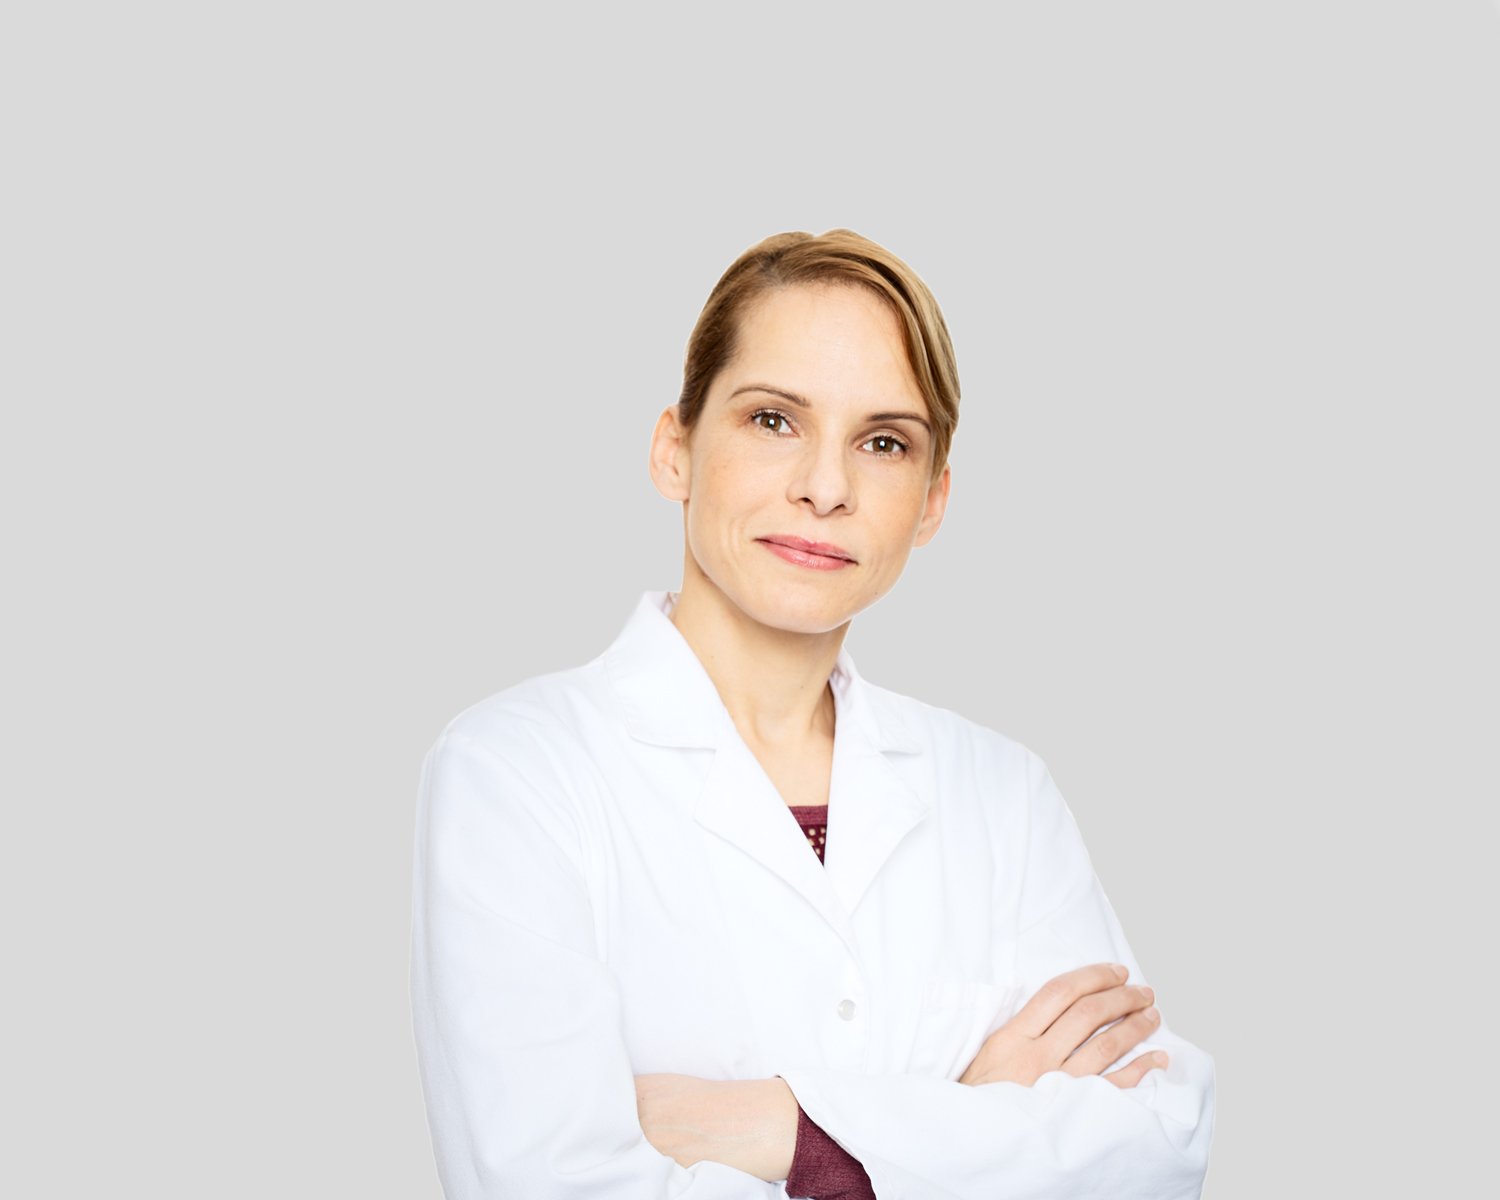 Dr. Andrea Siegel of the Animal Medical Center in New York City